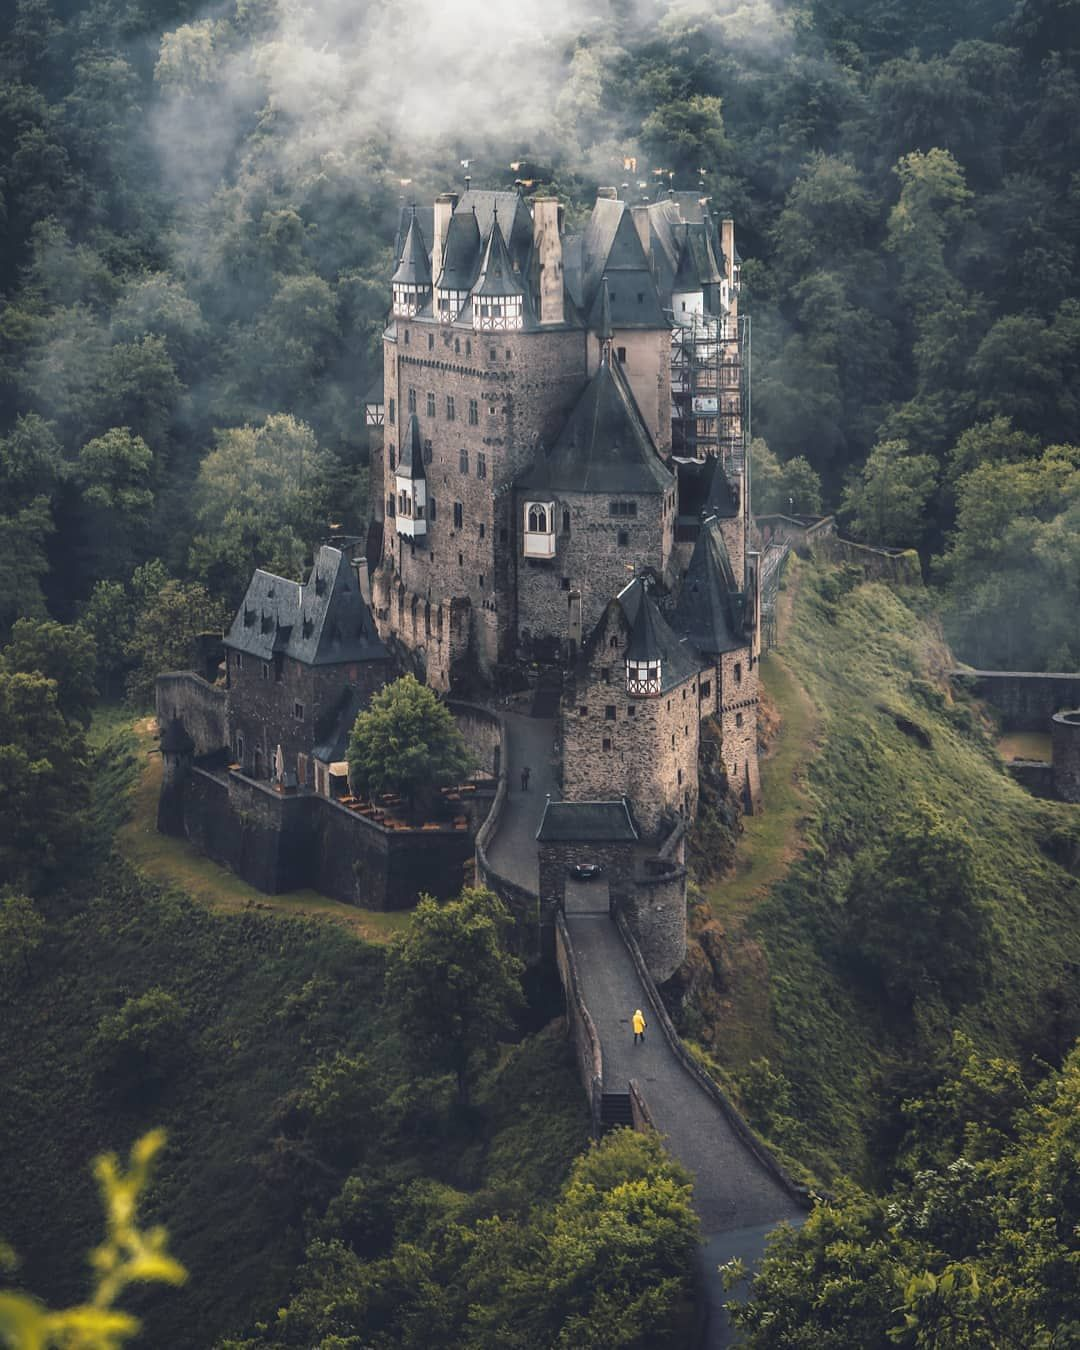 Sick Castle In Germany By Marcel Siebert Marcelsiebert Germany Castles Castle Beautiful Castles